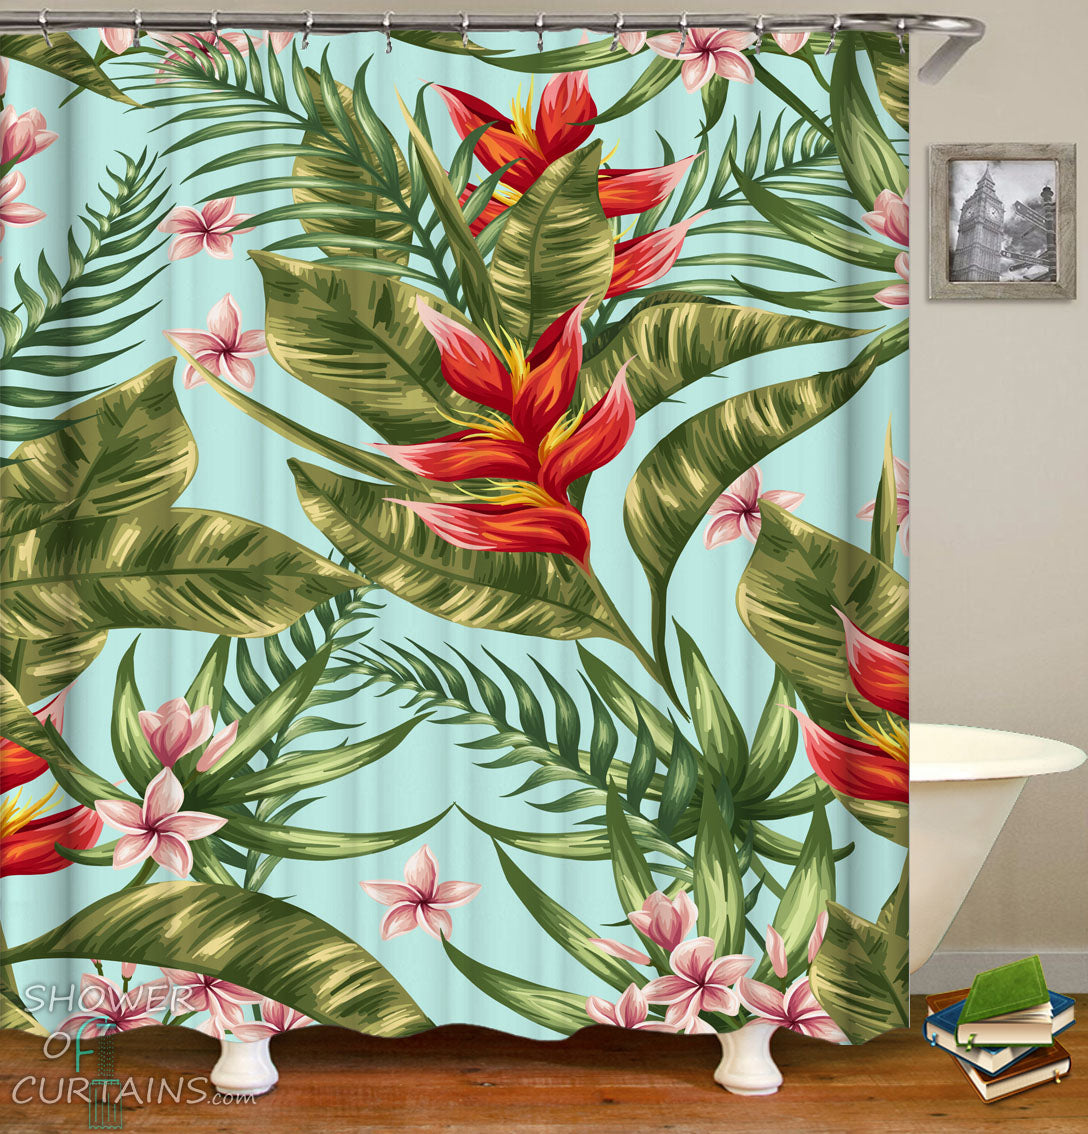 Tropical Shower Curtains Of Red And Green With Plumerias Frangipani Bird